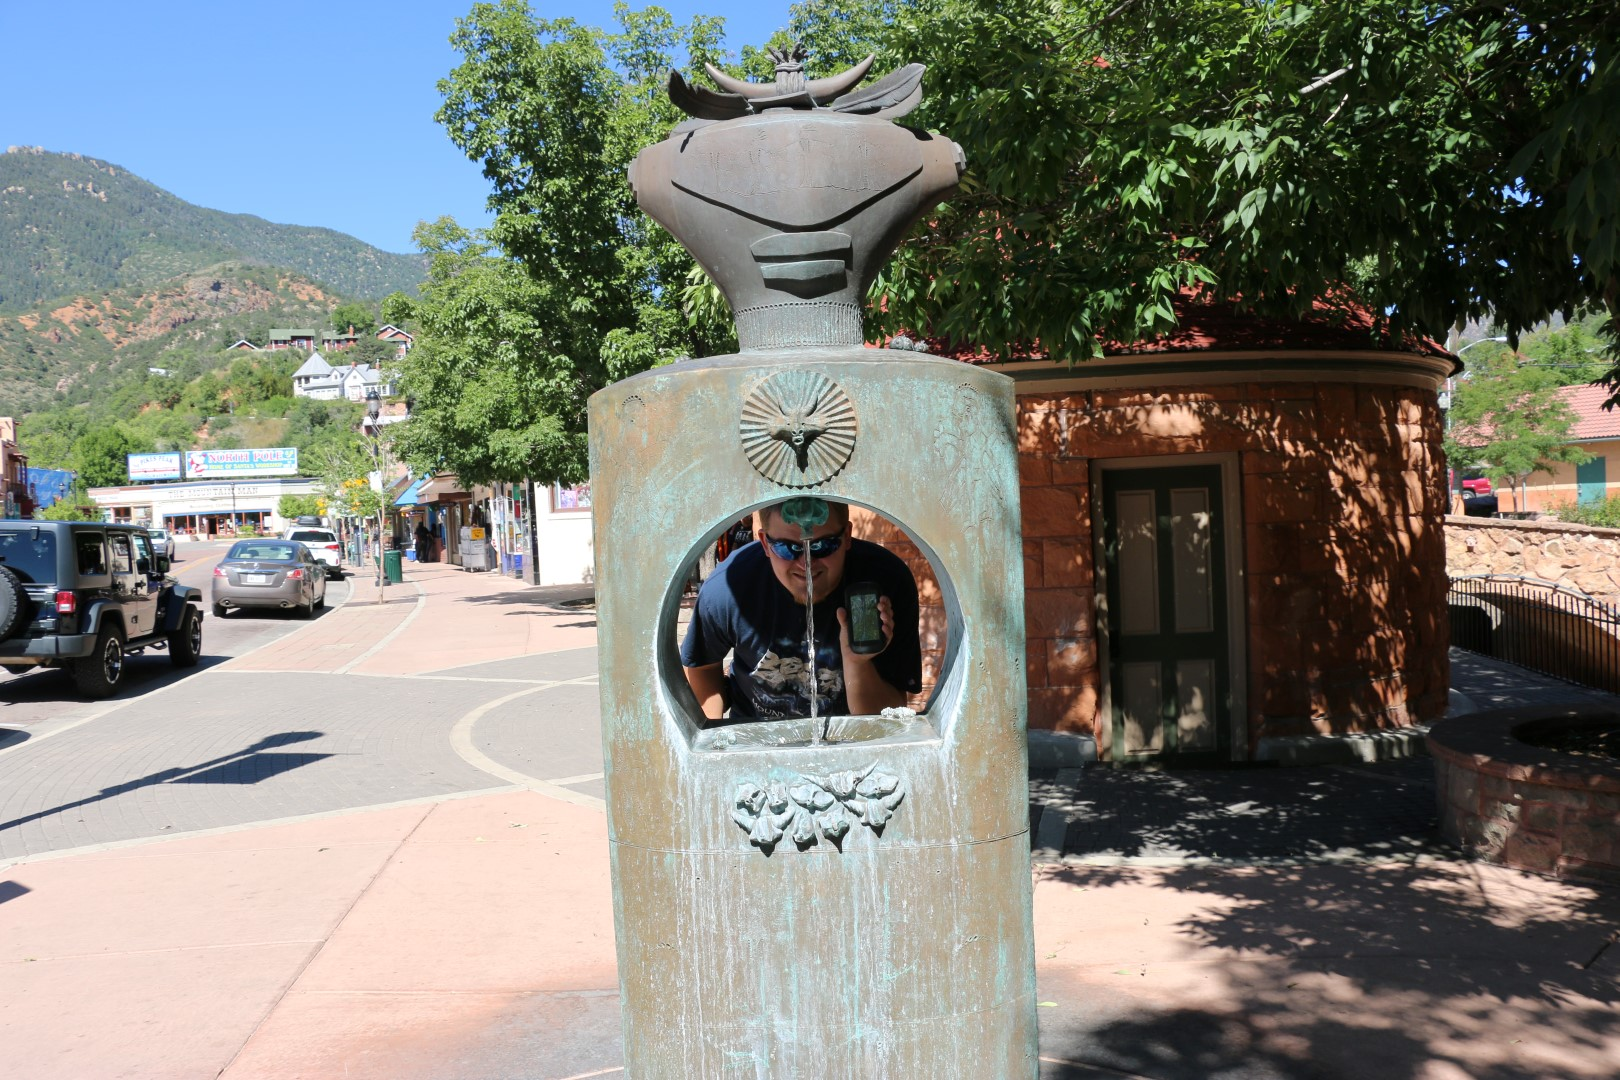 One of the earthcaches in Manitou Springs